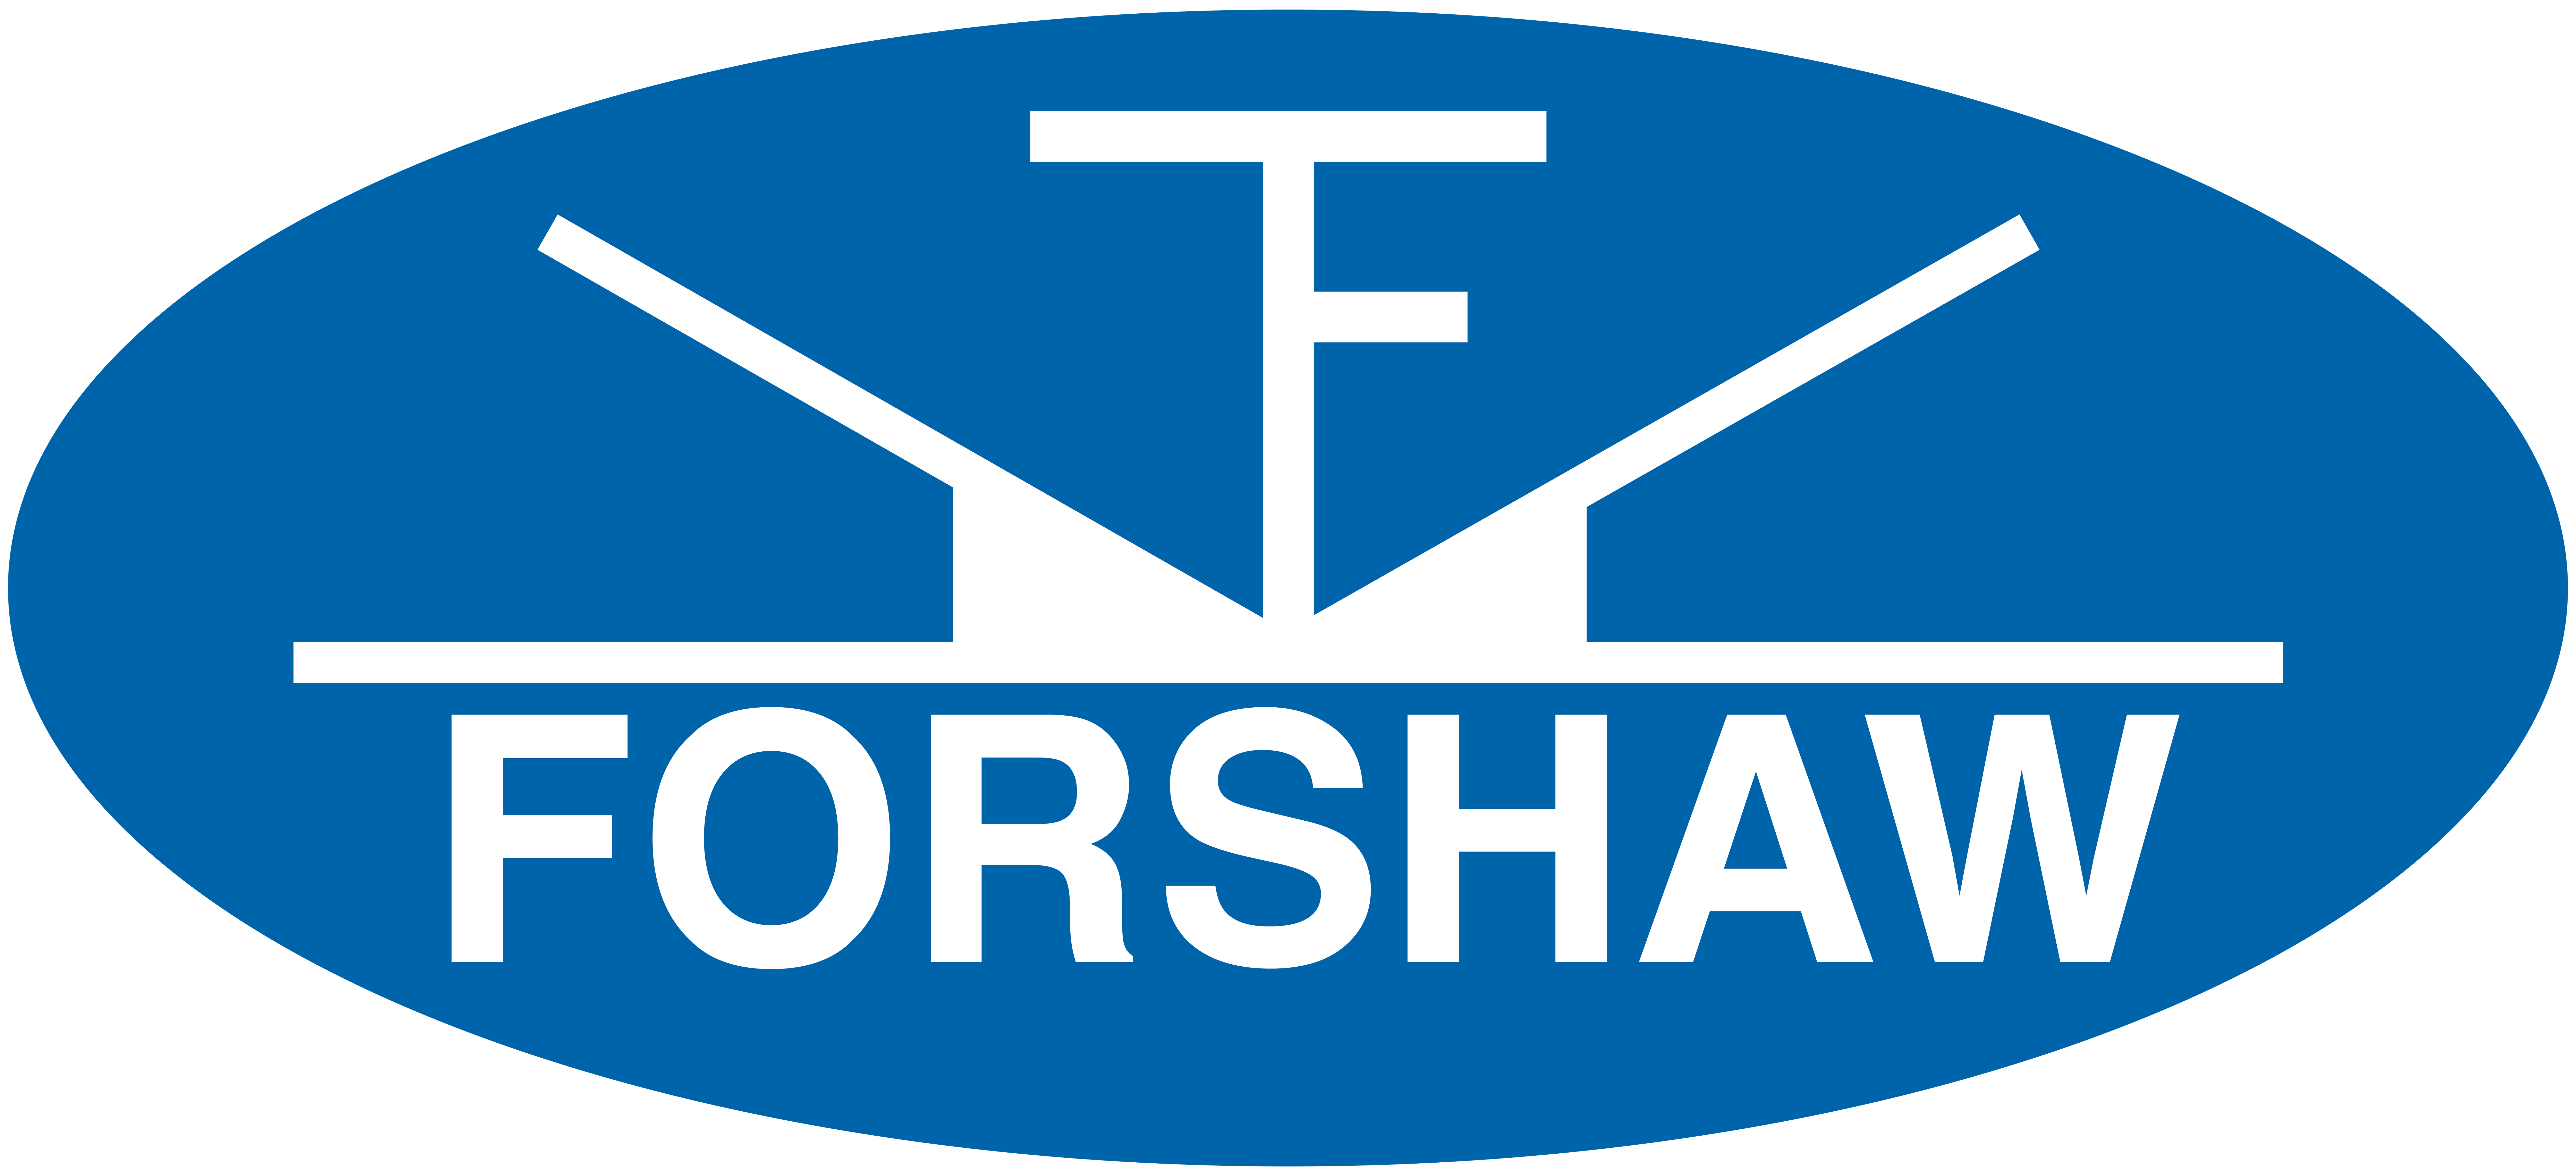 Forshaw BLUE LOGO PNG 002